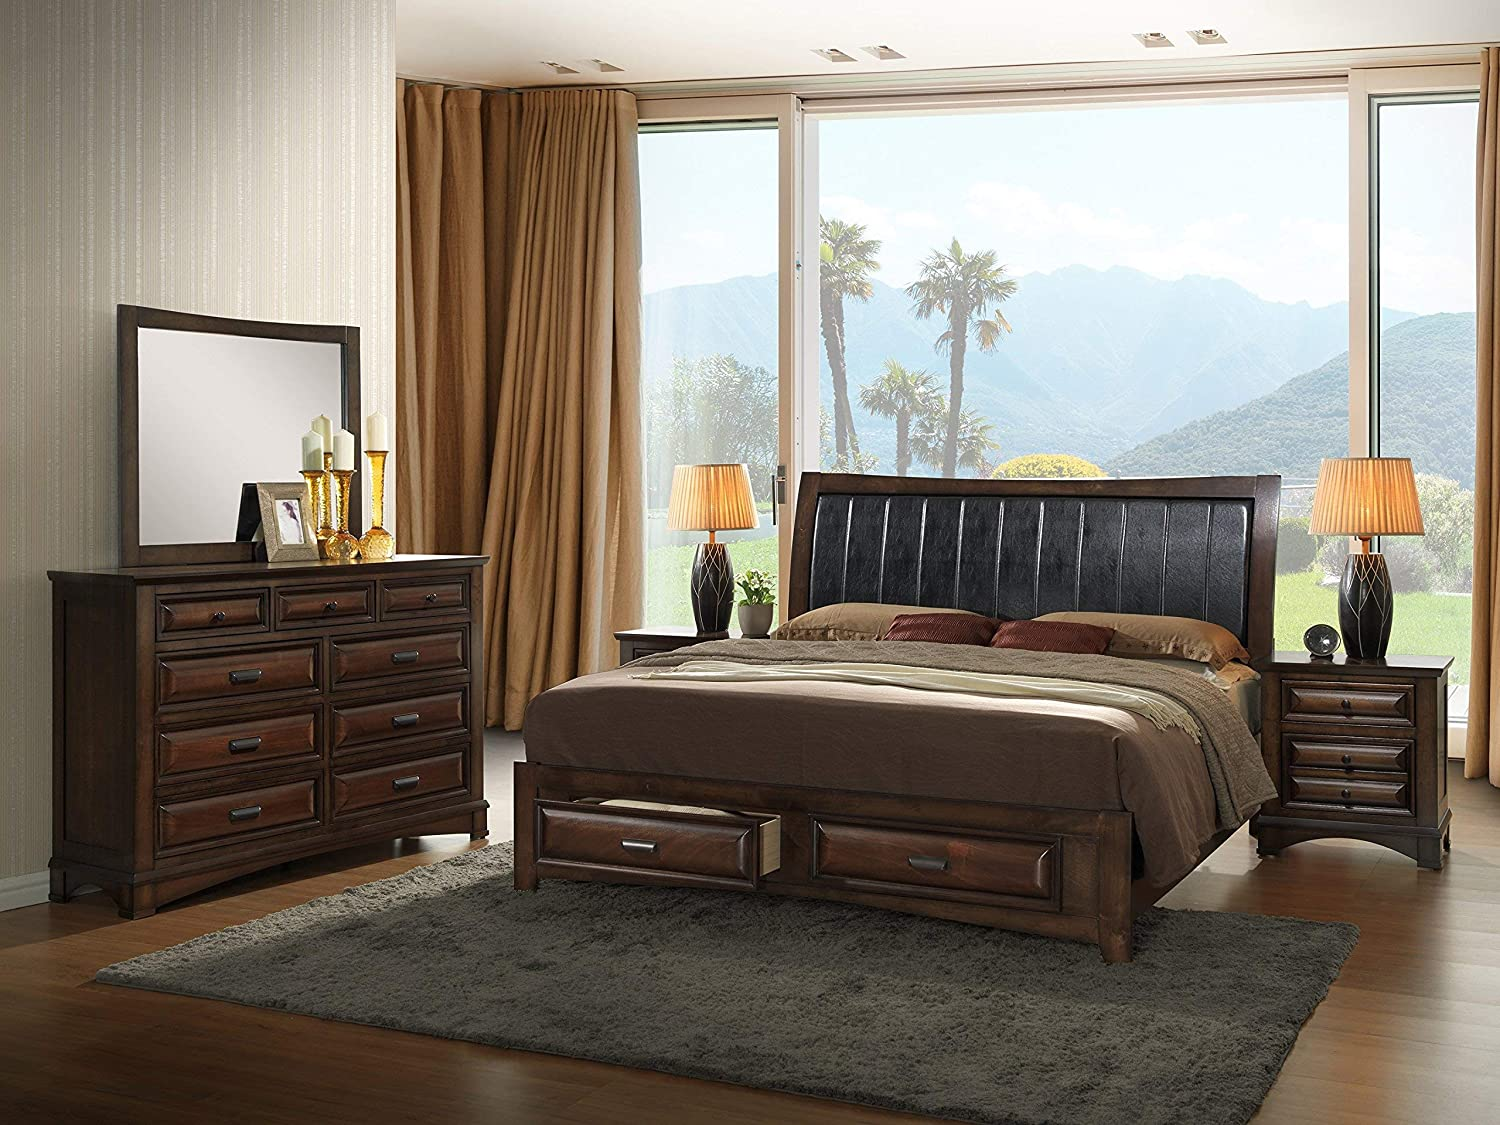 Broval Light Espresso Finish Queen Storage Bed, Dresser, Mirror, 2 Night Stands Wood Bed Room Set